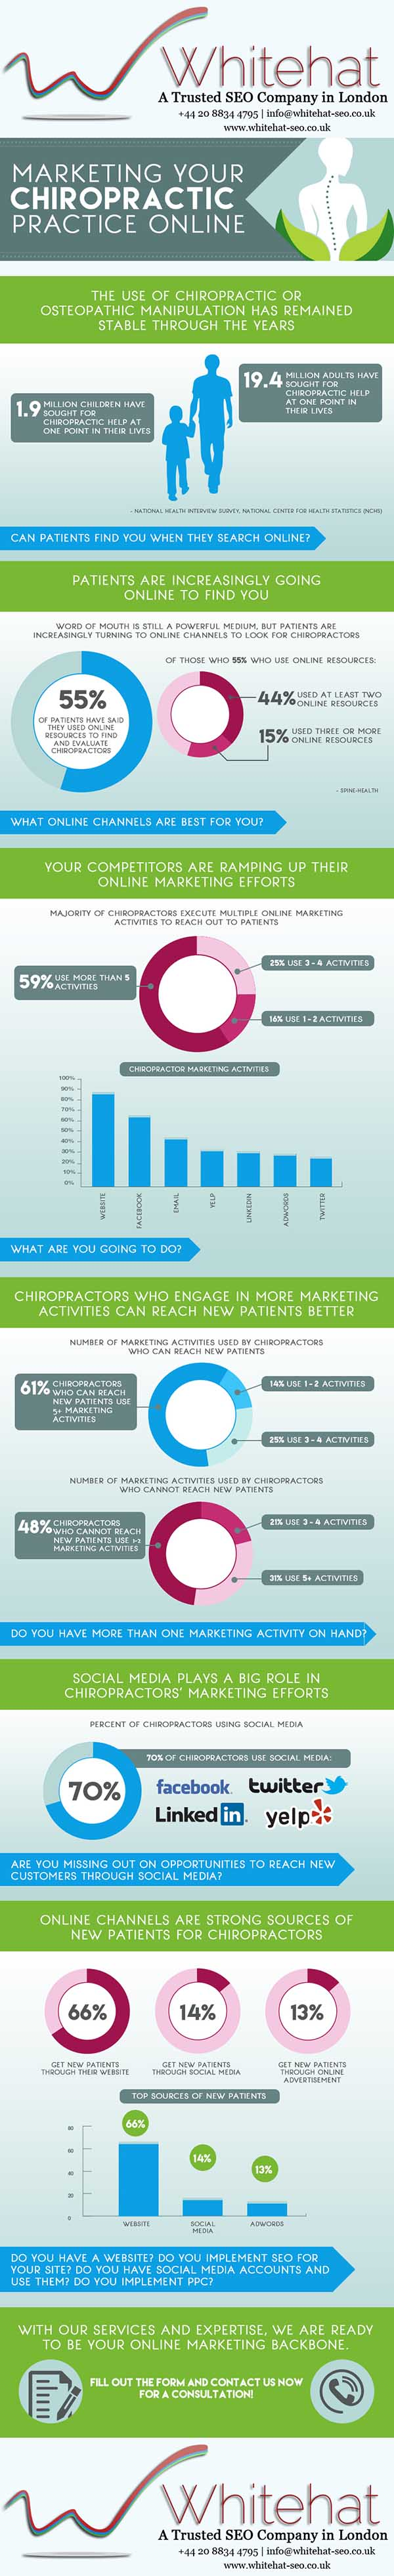 Your Chiropractic Practice Stand Out Online with help from an SEO agency in London